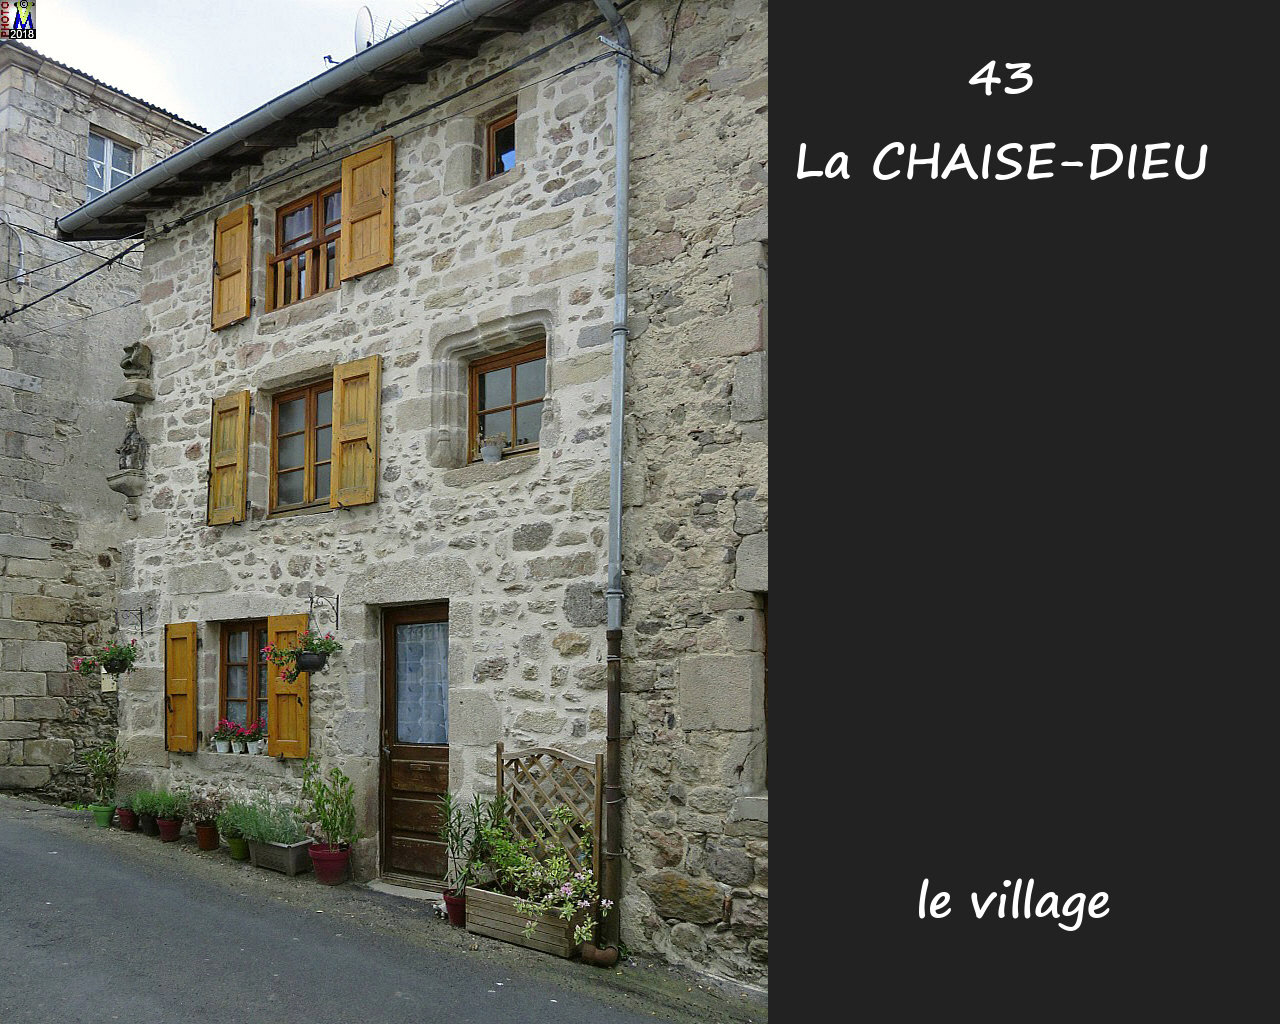 43CHAISE-DIEU_village_138.jpg